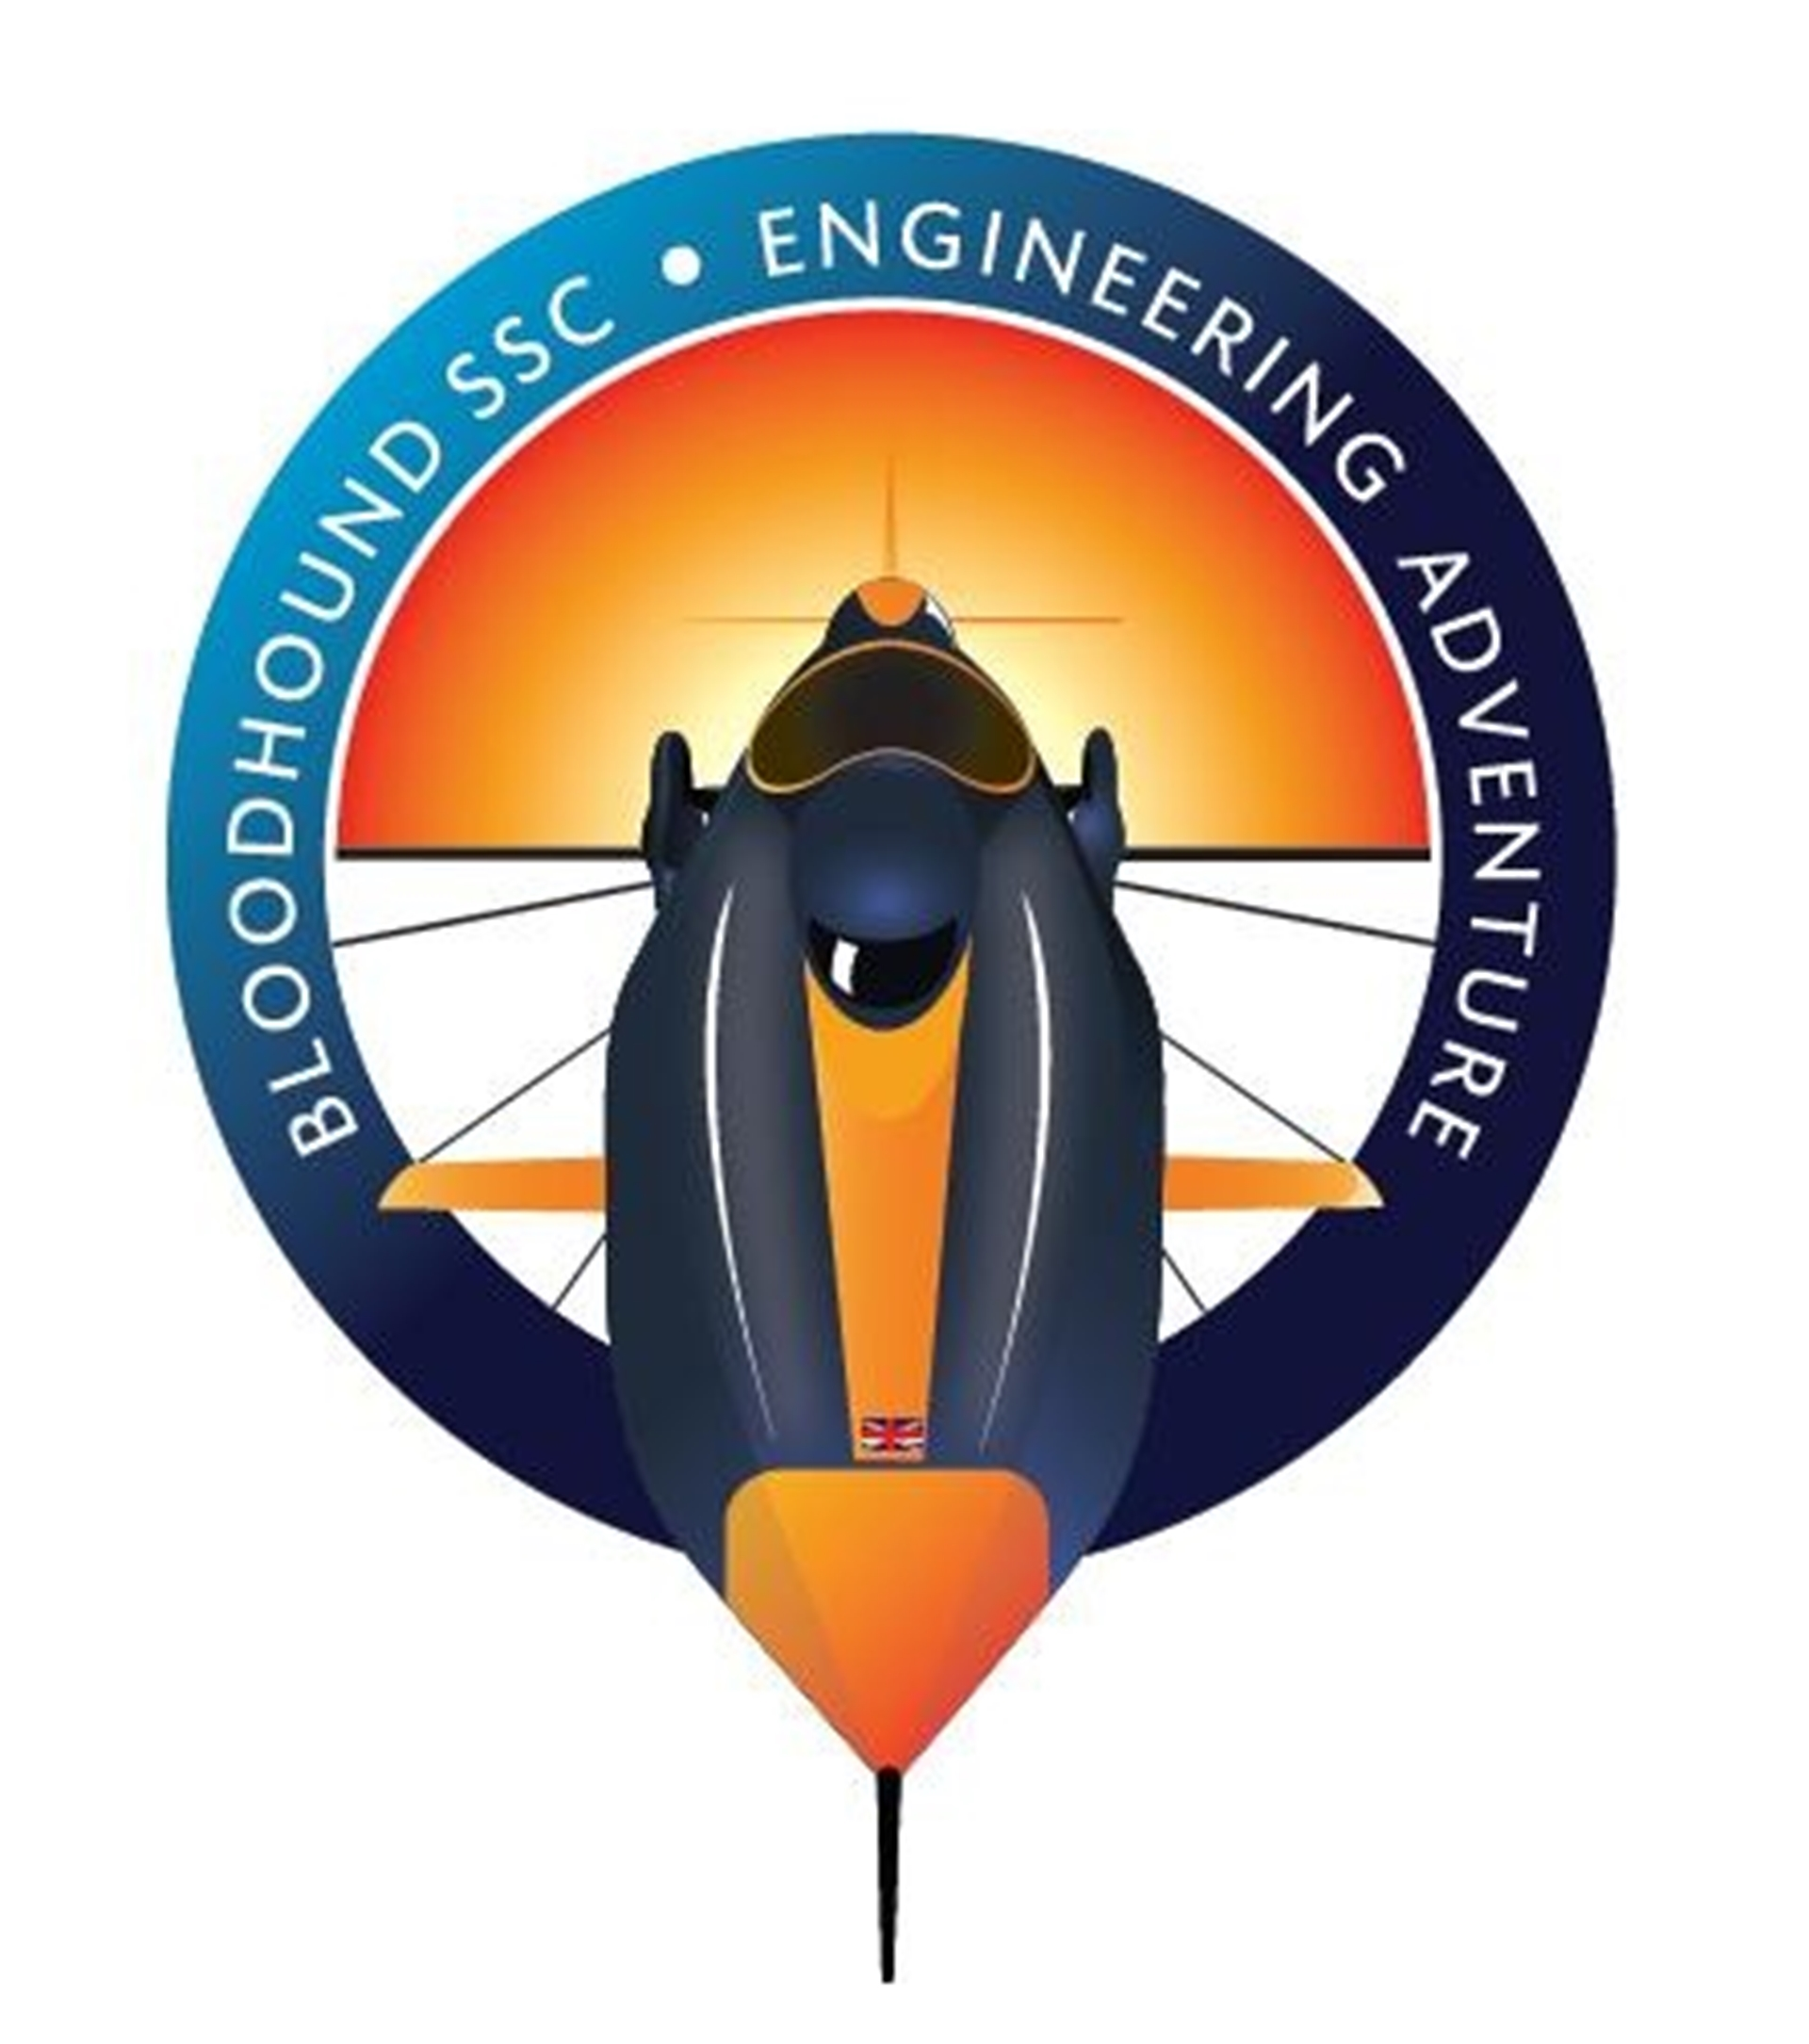 Bloodhound SSC Engineering Adventure